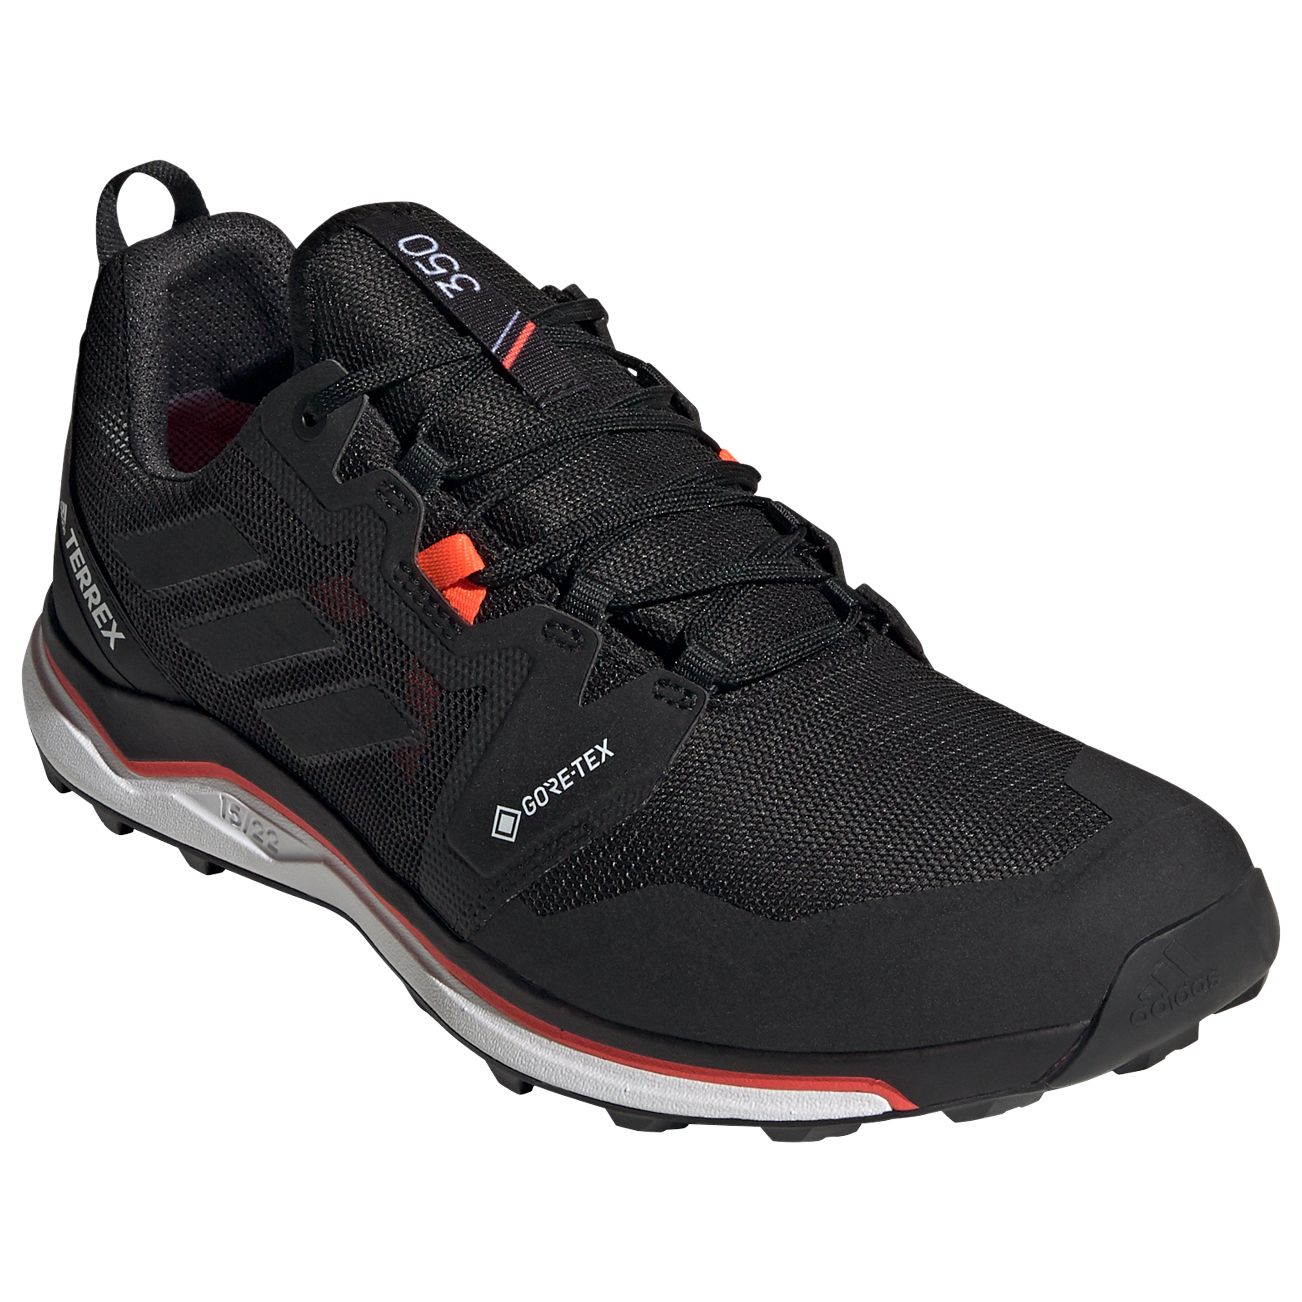 adidas - Terrex Agravic GTX - Trail running shoes - Core Black / Crystal White / Solar Red | 7,5 (UK)